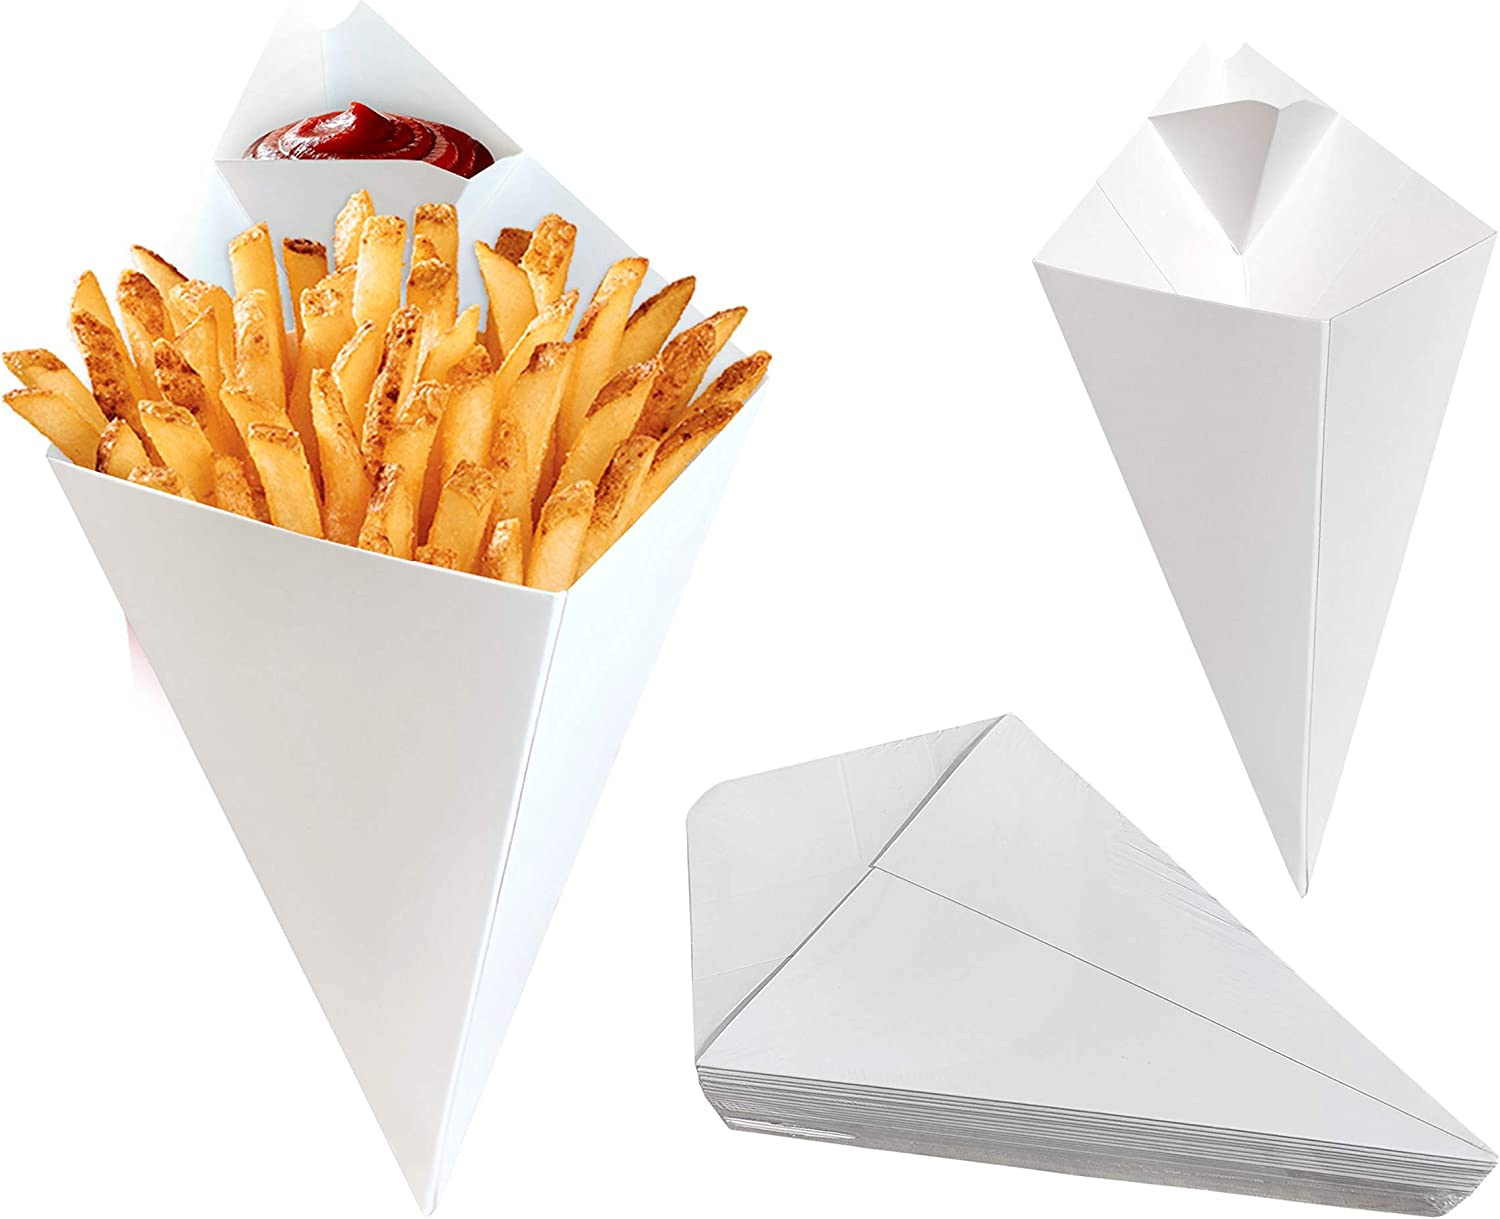 25 pcs Food Cones with Dip Pocket, Kraft Paper French Fries Cones with Dipping Sauce Compartment. (White)